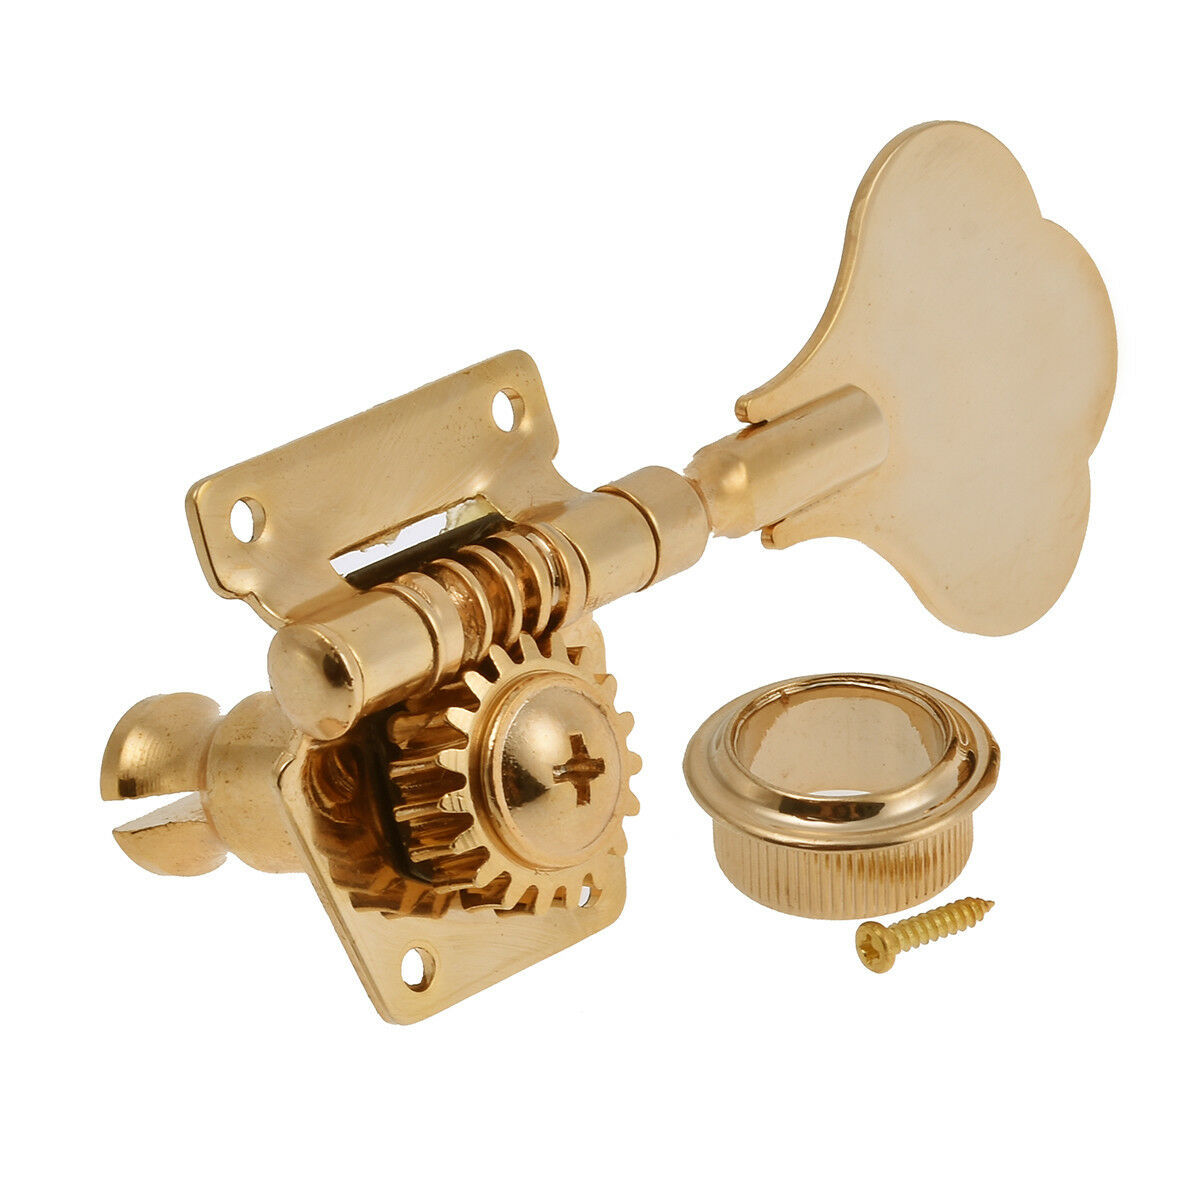 4 string bass guitar tuning pegs tuners keys machine heads open back 4r gold 634458694391 ebay. Black Bedroom Furniture Sets. Home Design Ideas